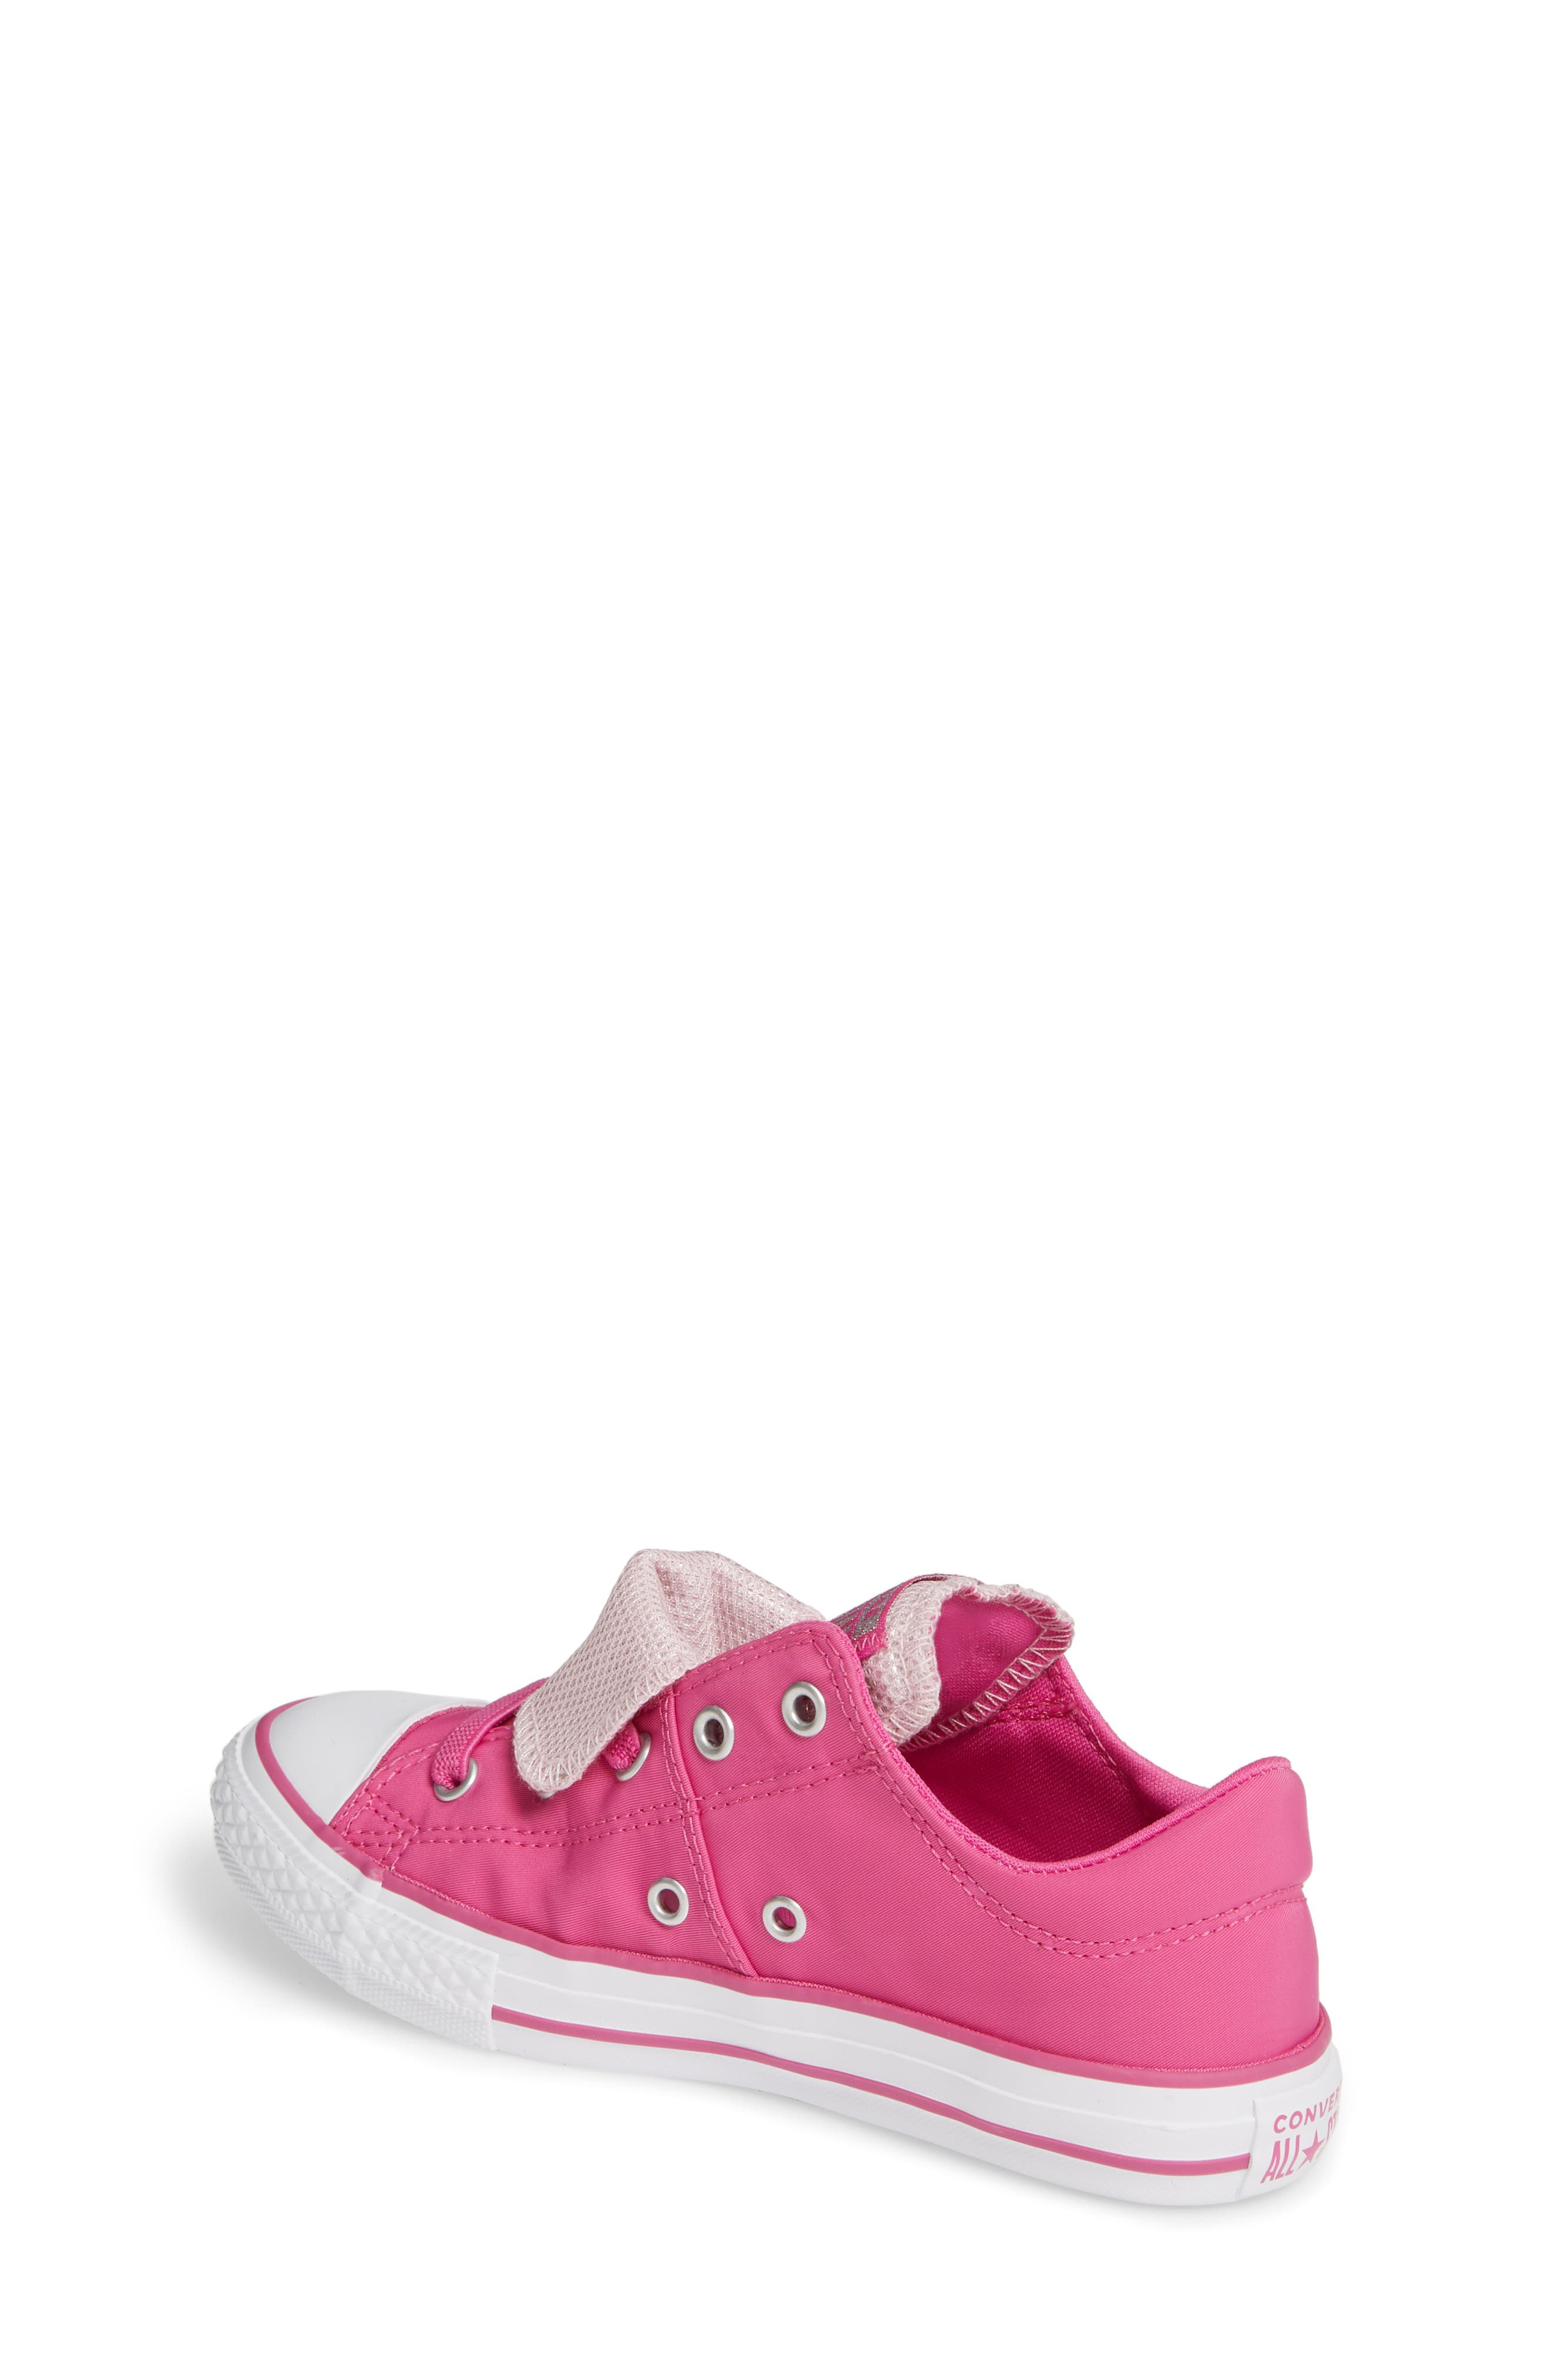 ,                             Chuck Taylor<sup>®</sup> All Star<sup>®</sup> Maddie Double Tongue Sneaker,                             Alternate thumbnail 32, color,                             650